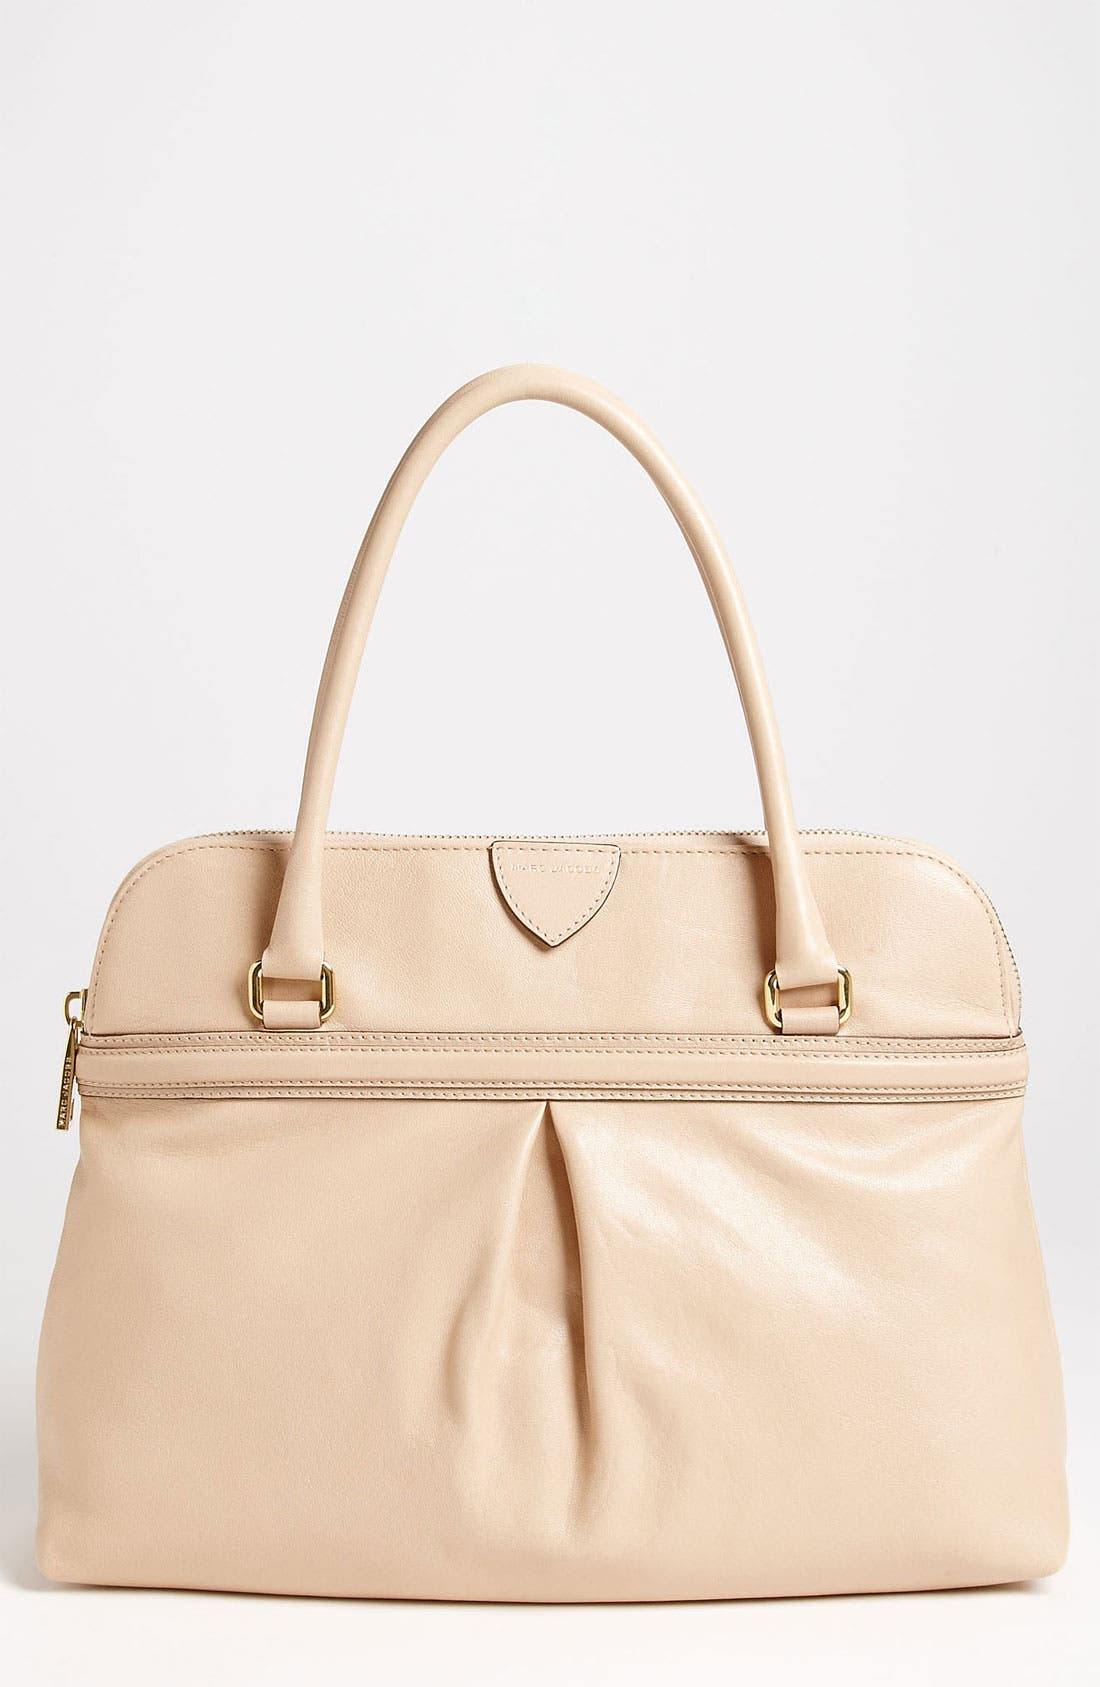 Main Image - MARC JACOBS 'Raleigh' Leather Handbag